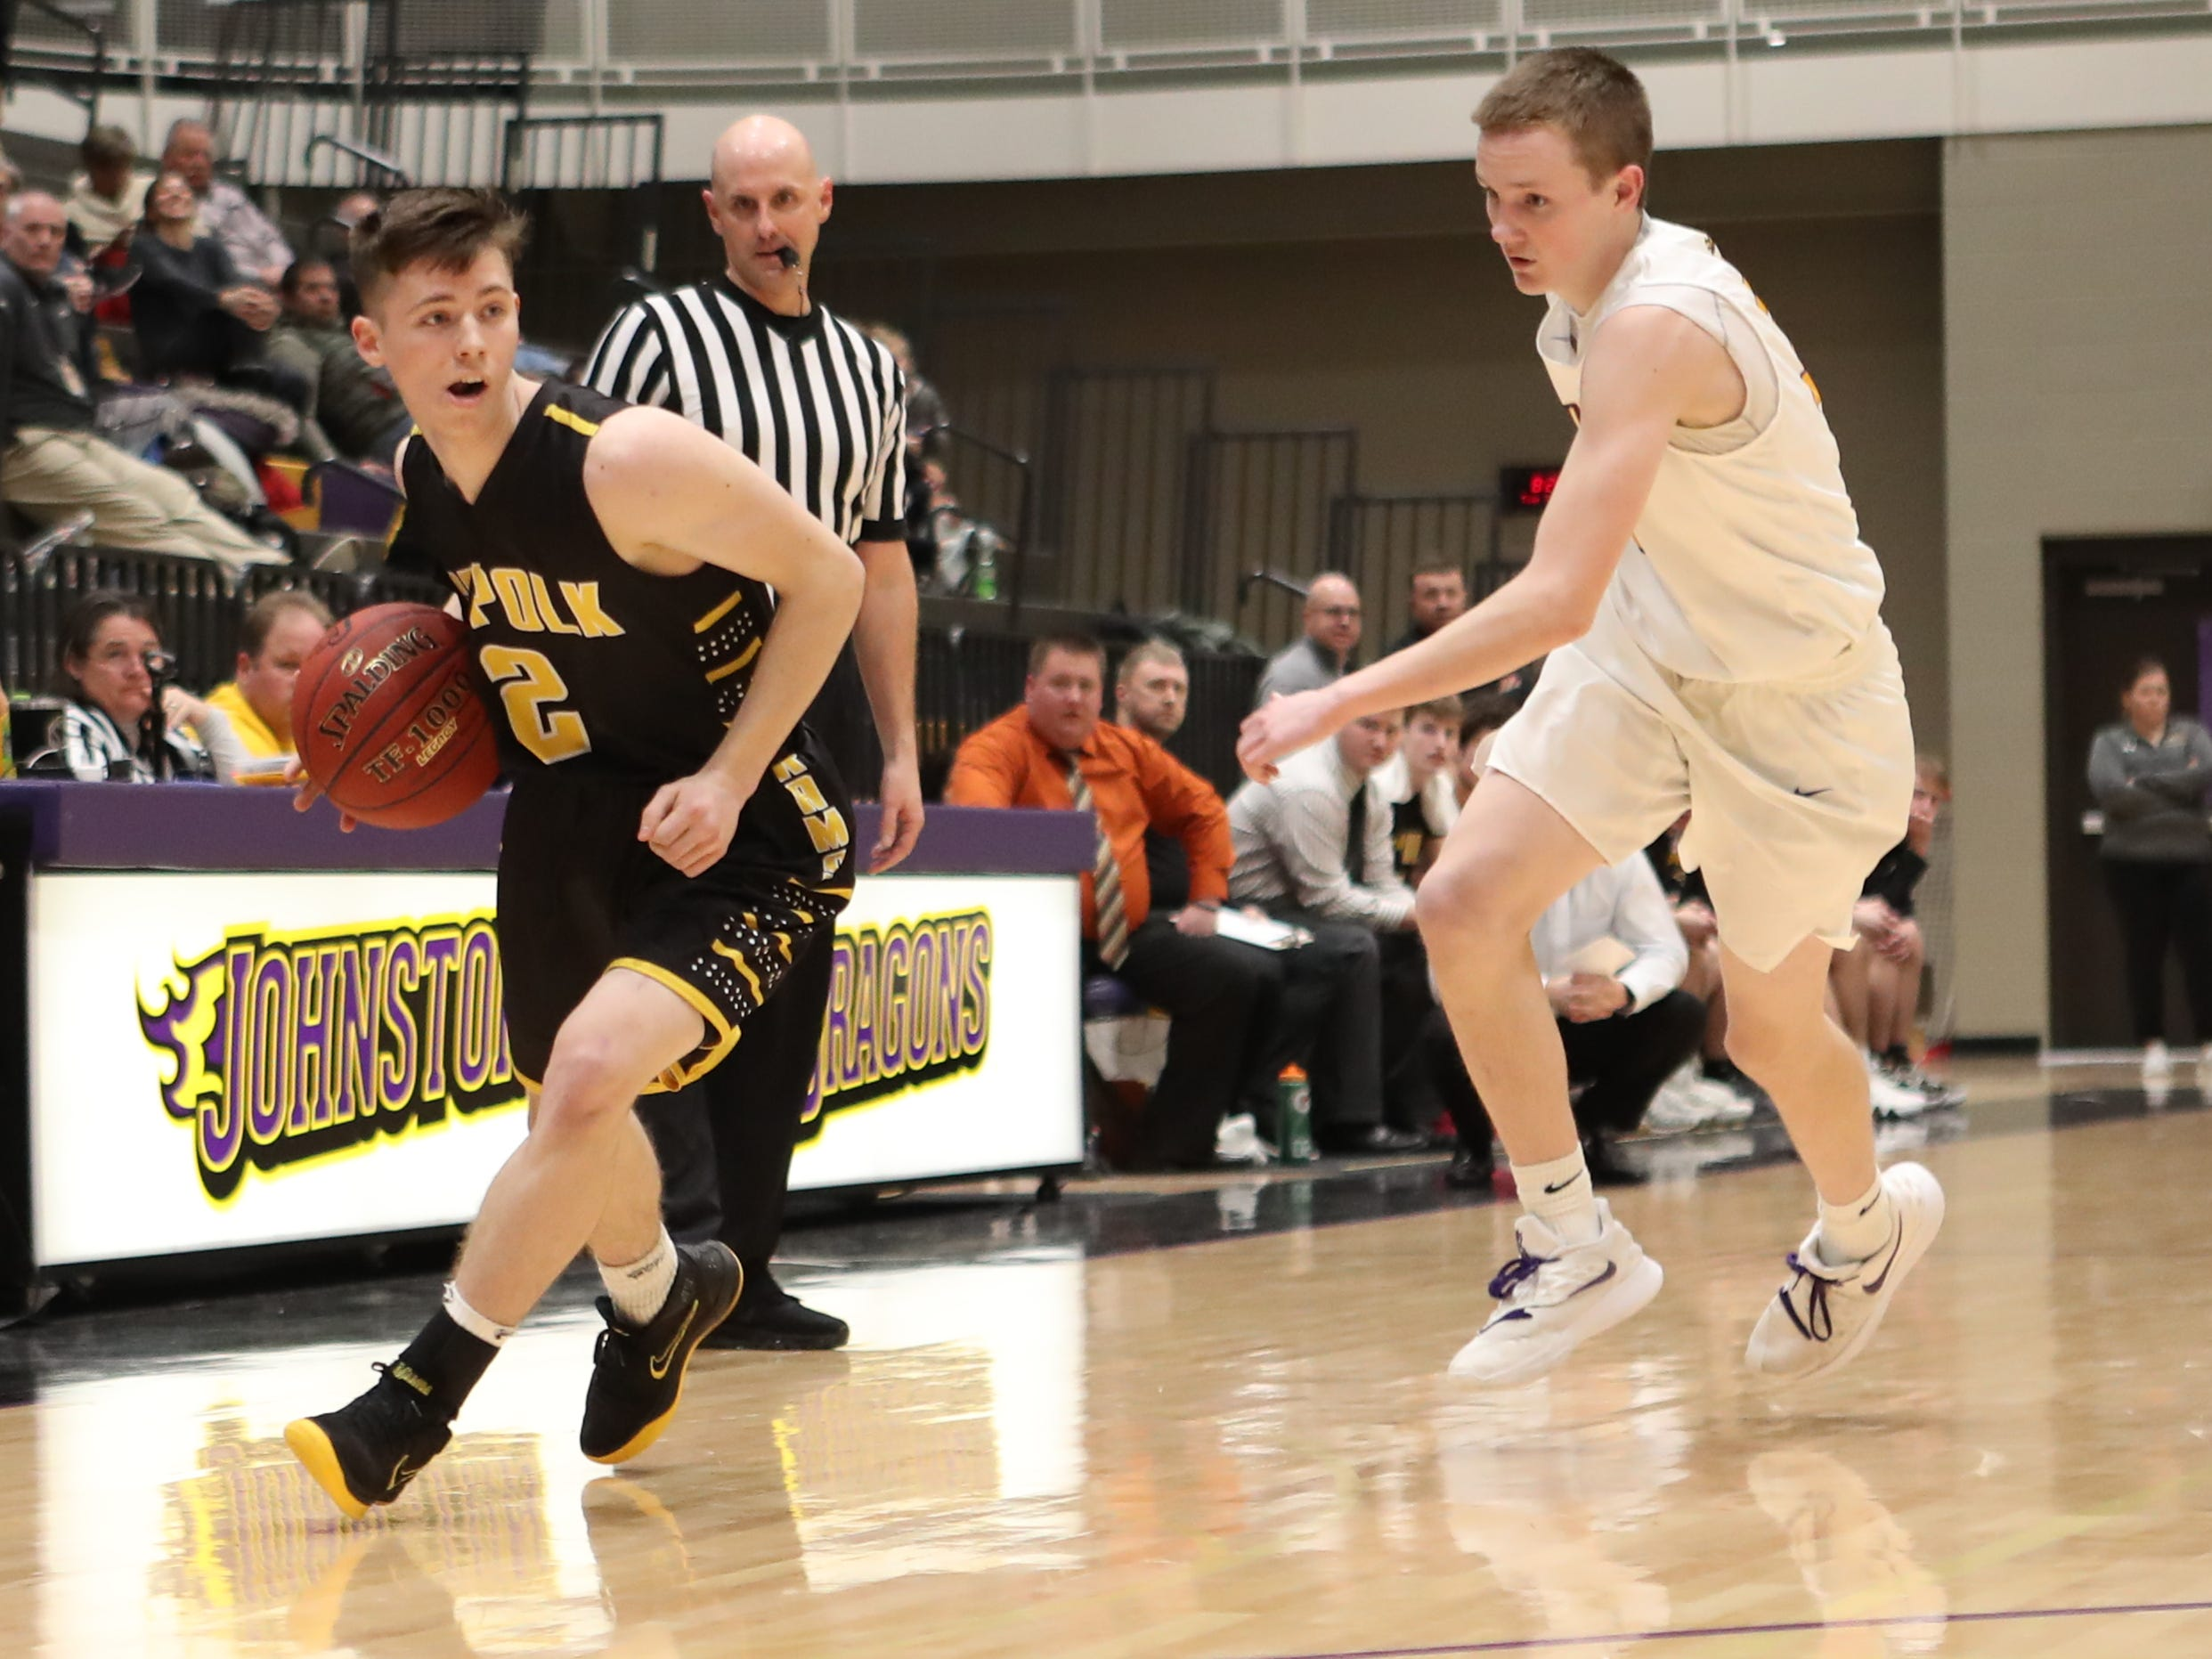 Southeast Polk's Eli Christiansen (2) beats the Dragons' defense down the court Feb. 5 at Johnston High School. Johnston won the game 51-44.